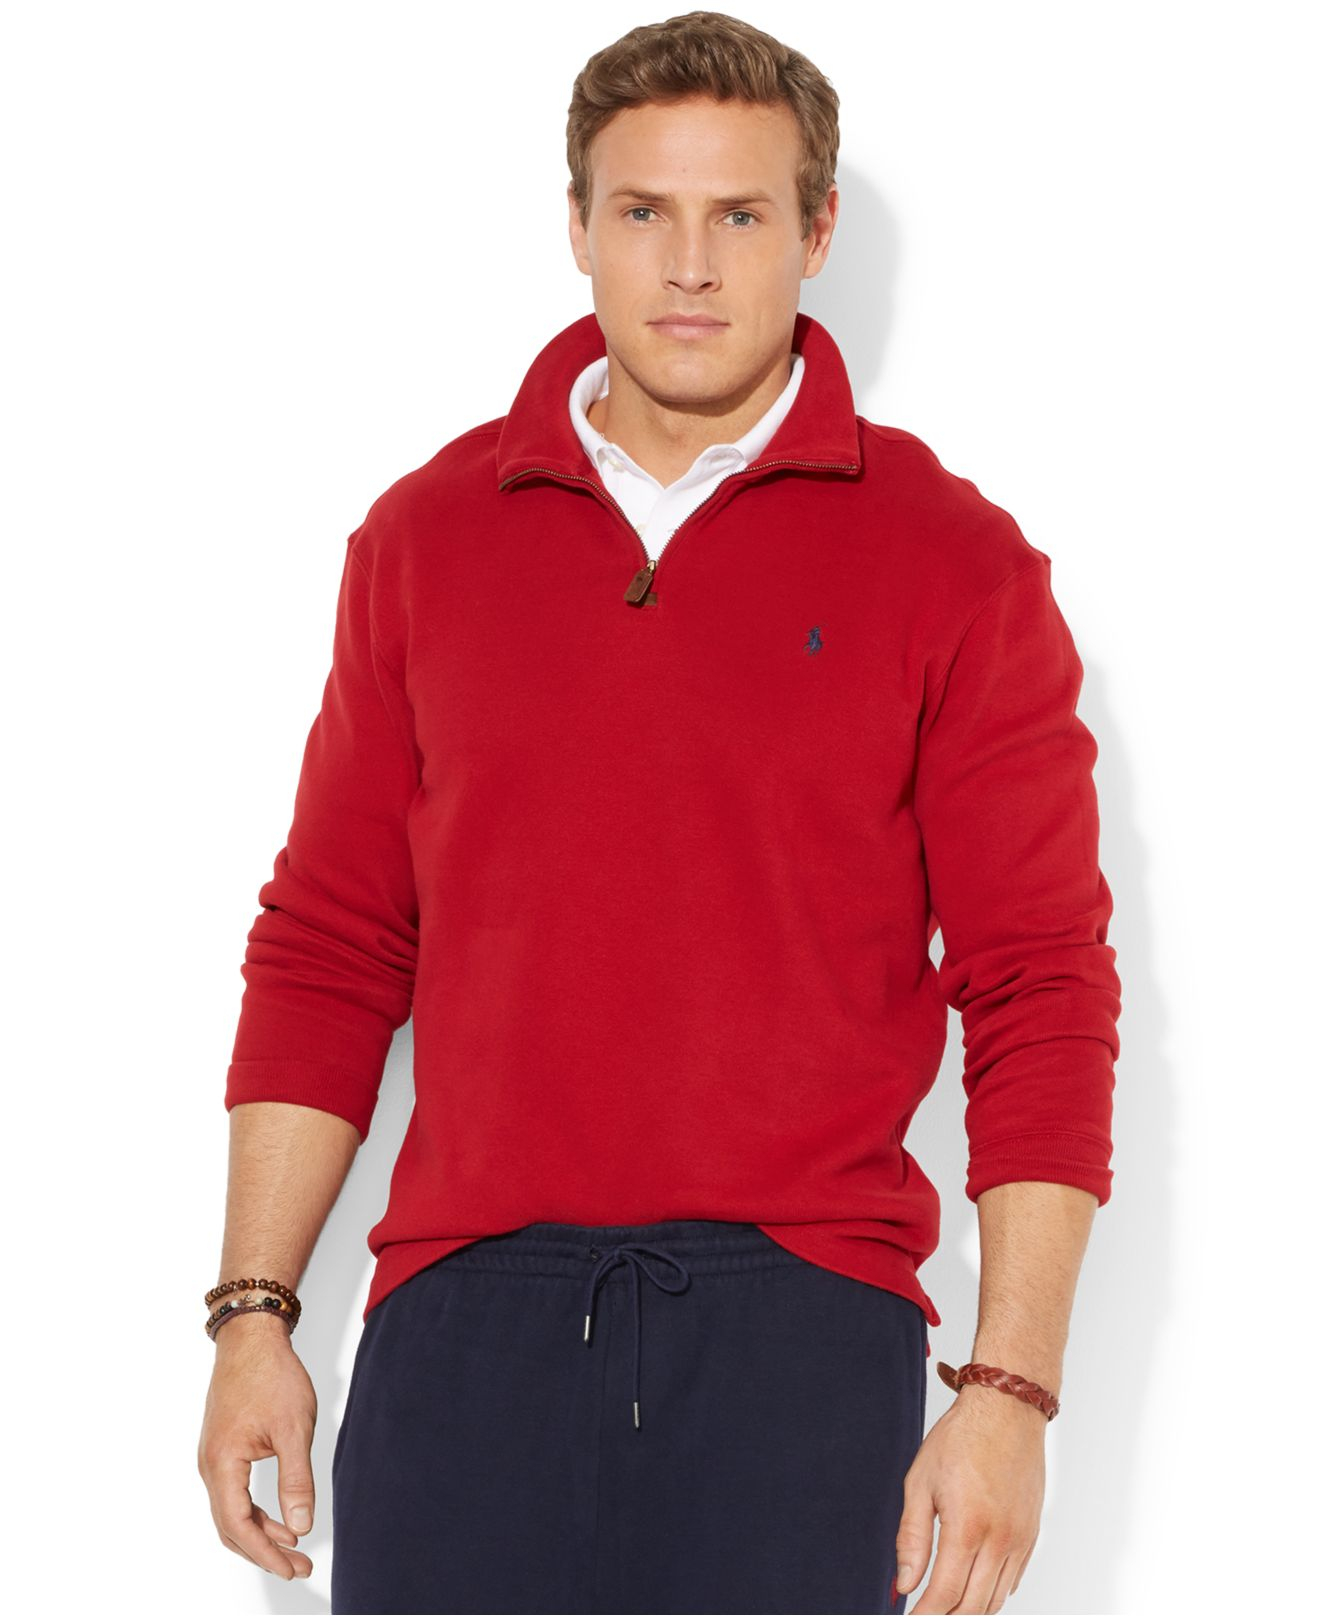 Polo Ralph Lauren French-Rib Full-Zip Red Hoodie | Euro Star Limos